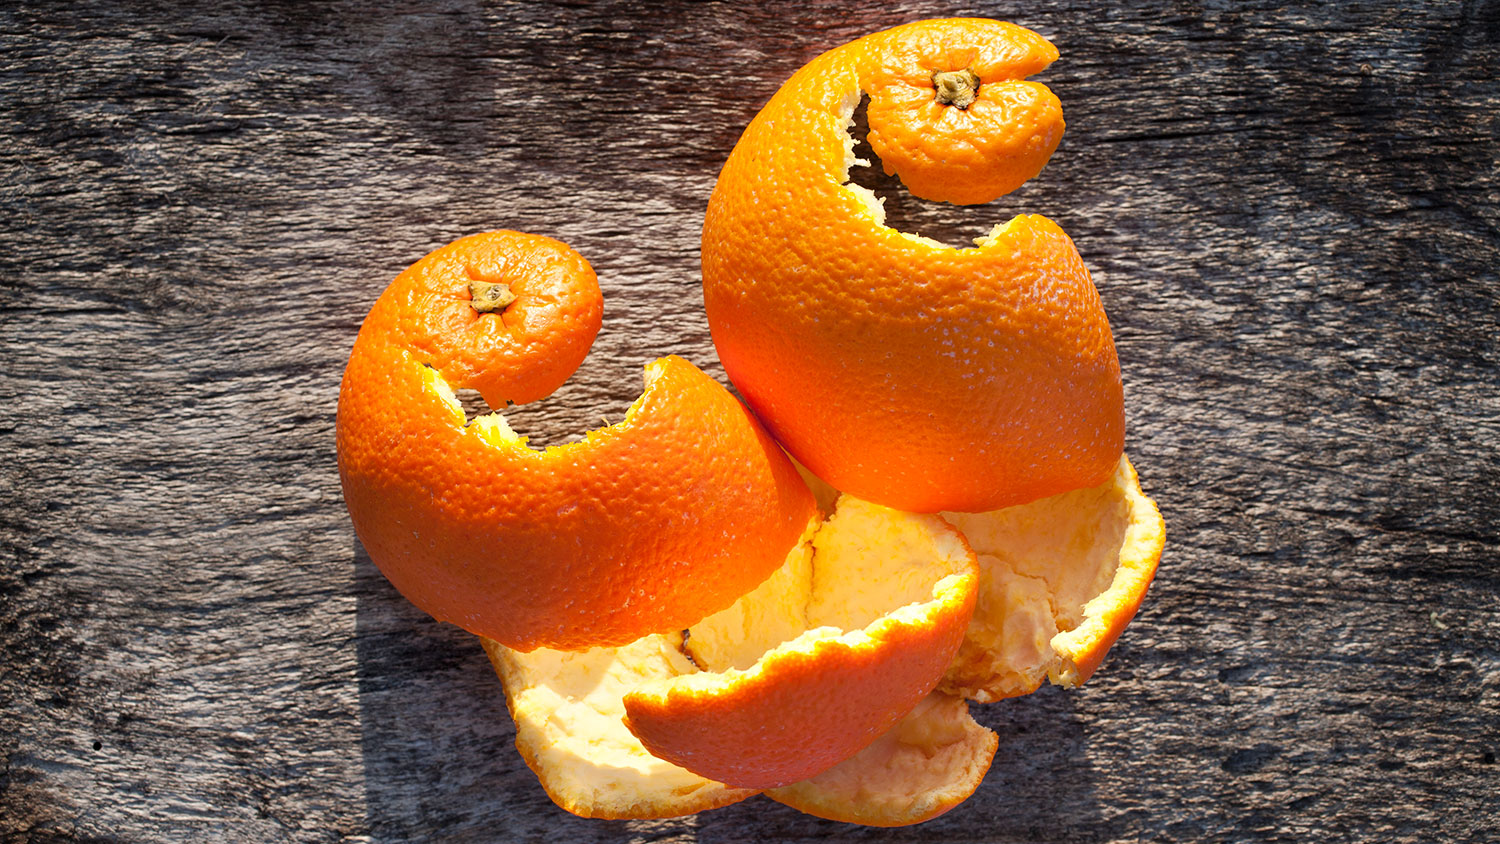 orange peels clean waste waters